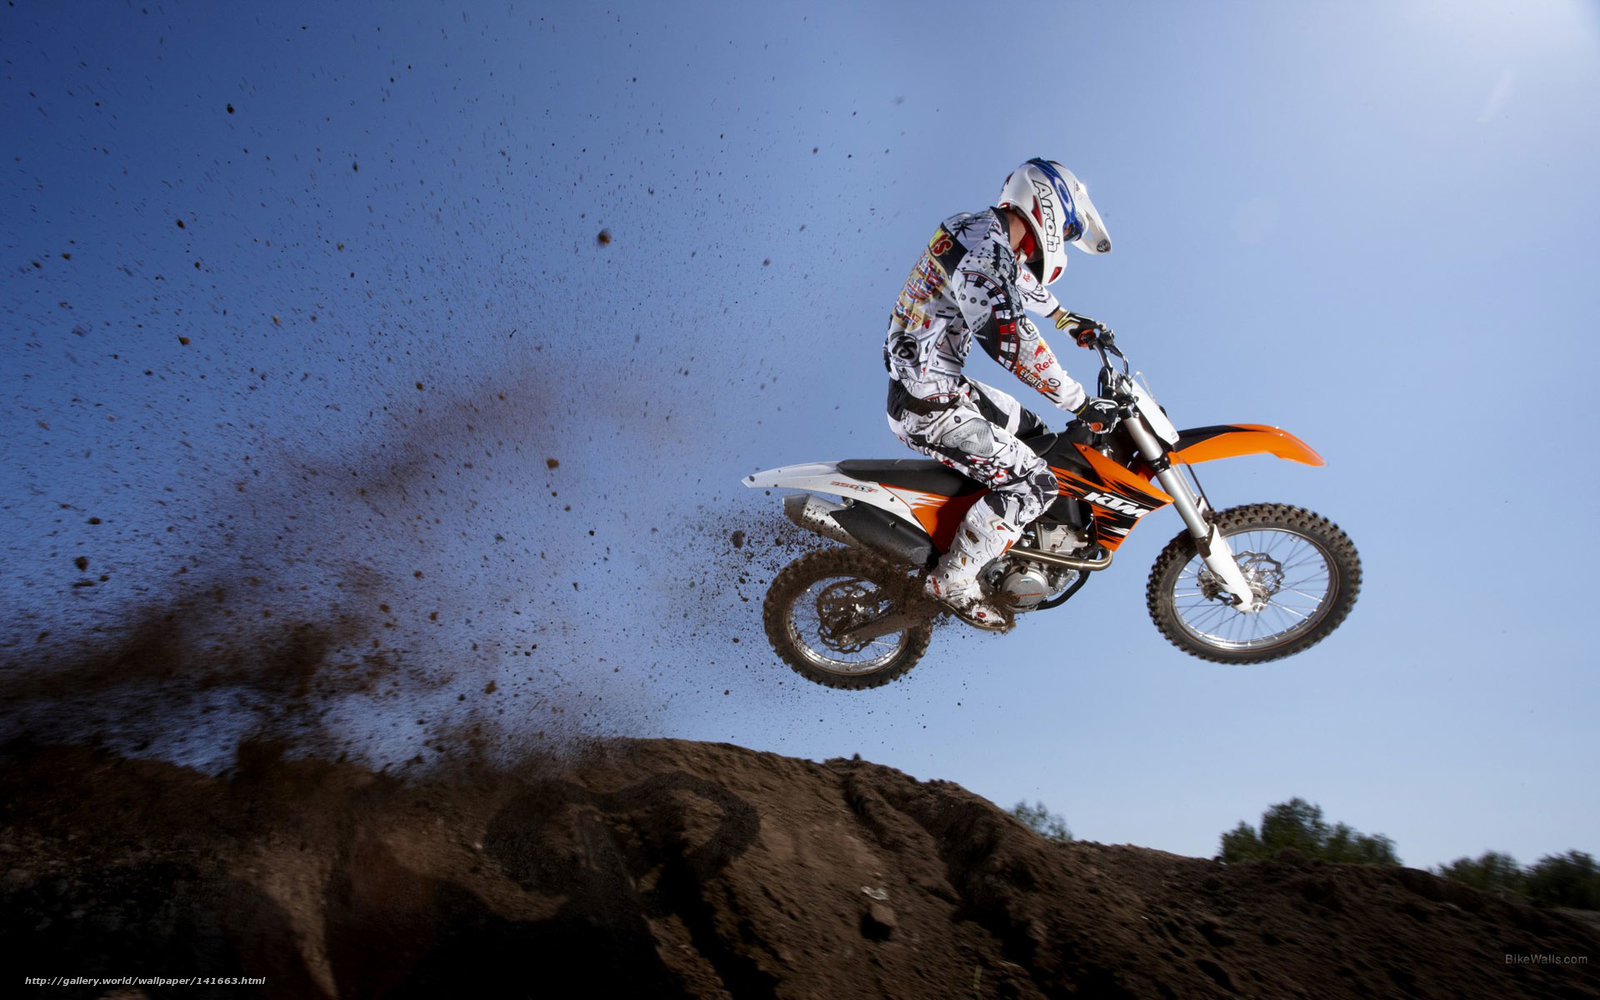 Download wallpaper KTM Motocross SX 350 SX F 350 SX F 2011 1600x1000